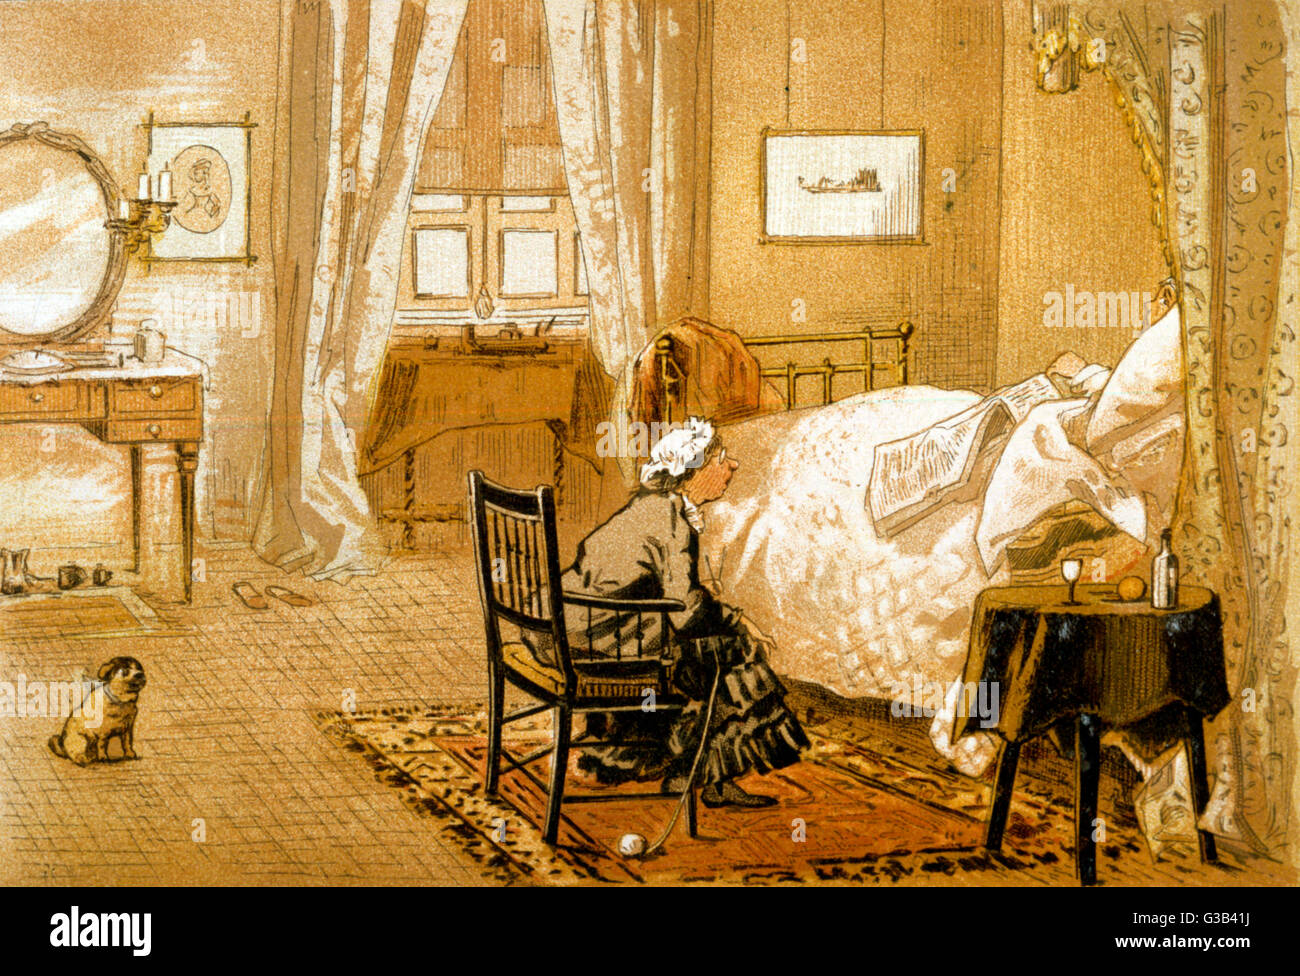 A bed-ridden gentleman is  attended by a kindly lady         Date: 1884 - Stock Image